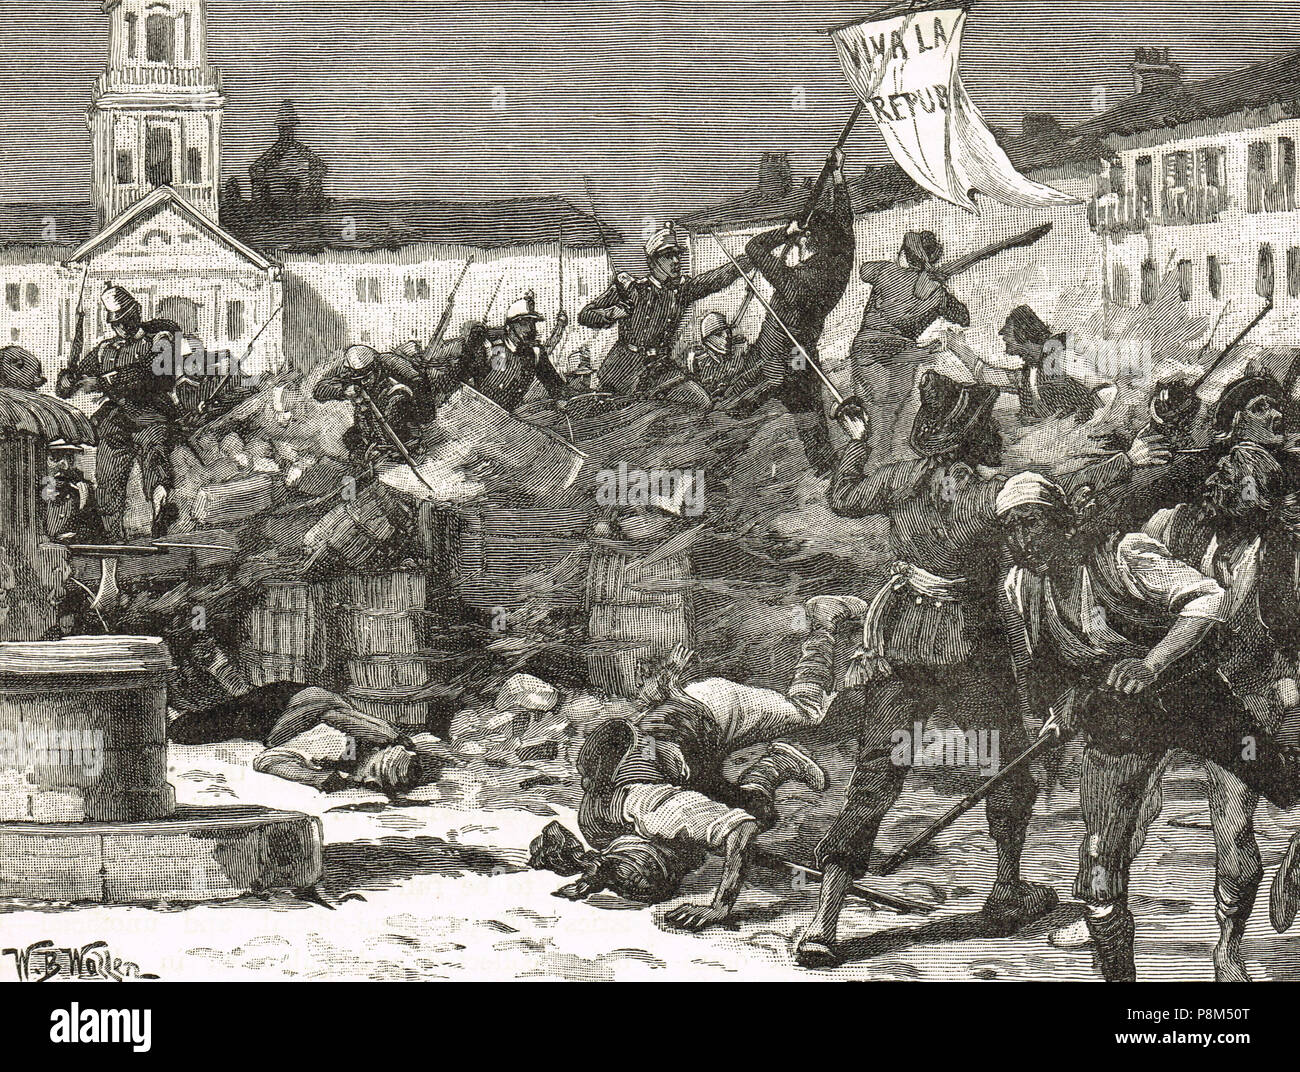 Street fighting in Malaga, Spain, 1869.  A epublican insurrection, during the Glorious Revolution, demanding a Spanish republic following the deposition of Queen Isabella II.  Brutally suppressed the by Provisional government who wished to retain a monarch. - Stock Image